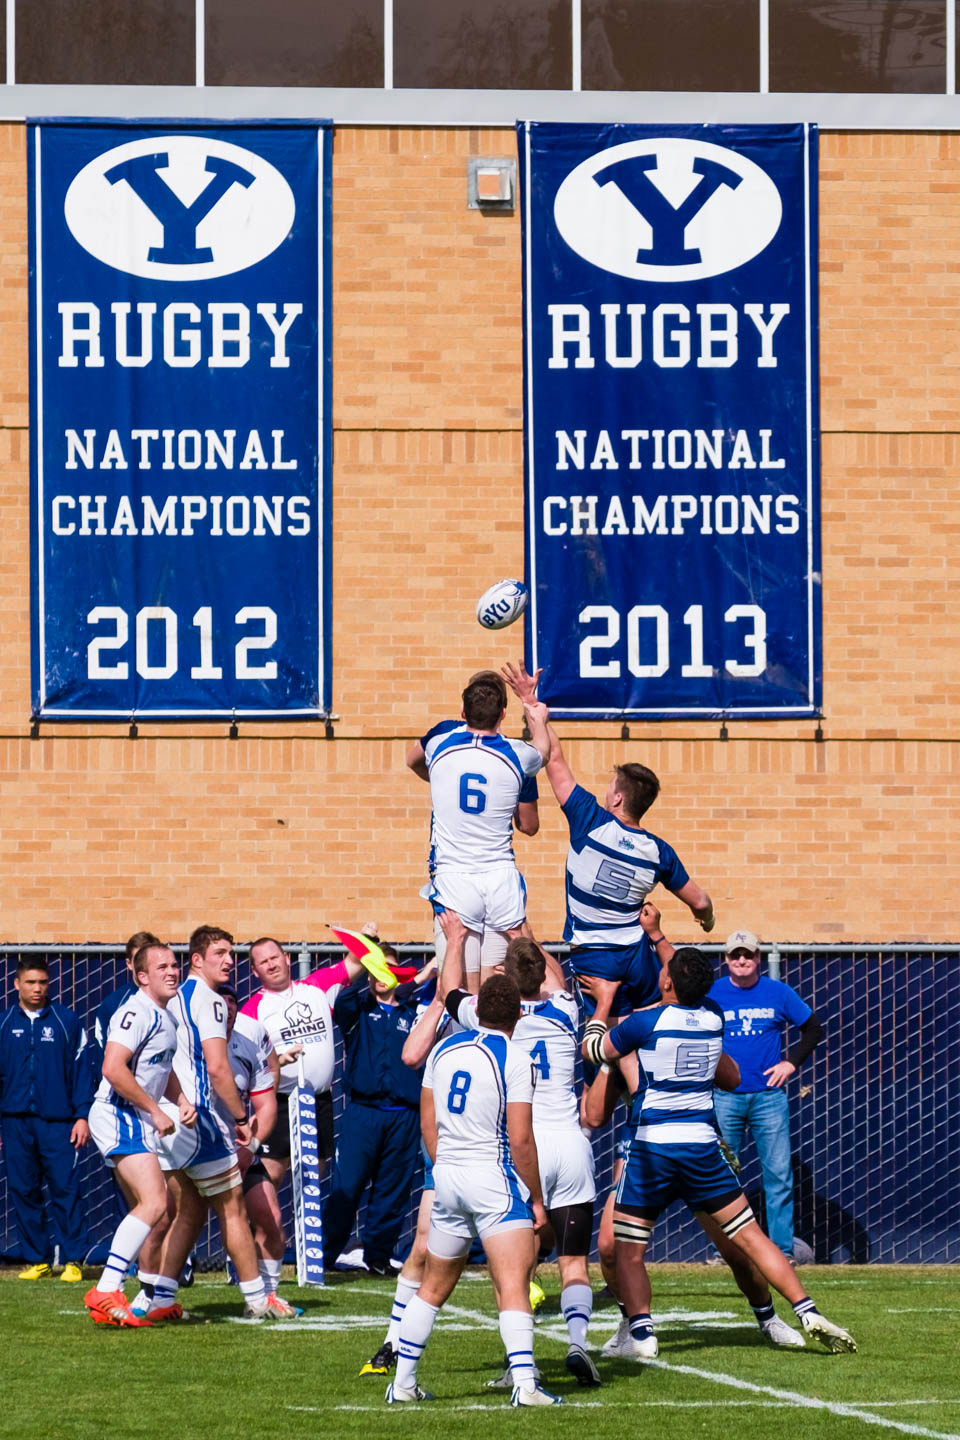 A line-out in front of the championship banners